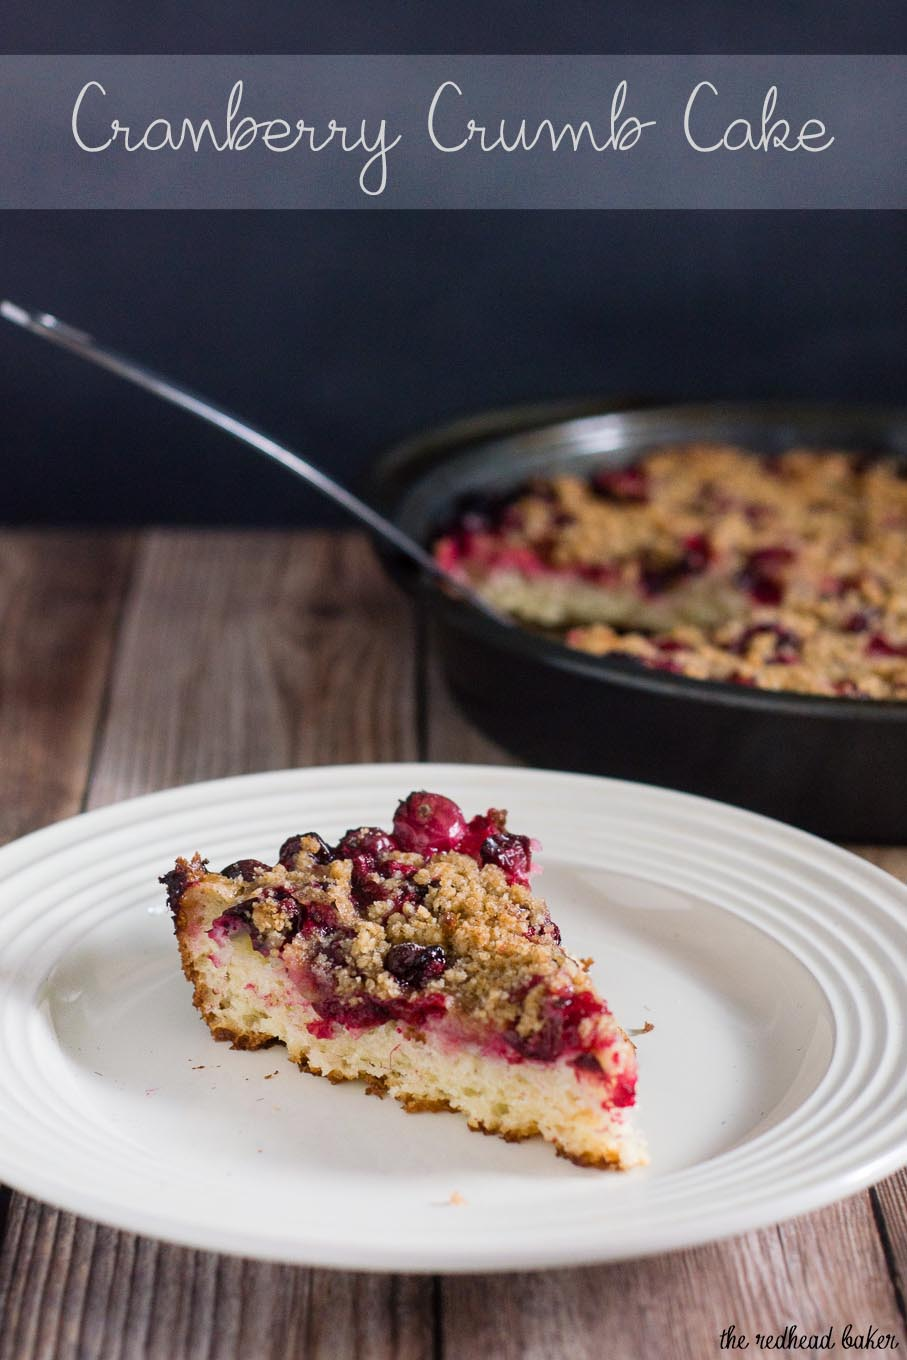 Cranberry crumb cake combines an orange-flavored cake, sugared cranberries and crumb topping for a delicious holiday breakfast or dessert.